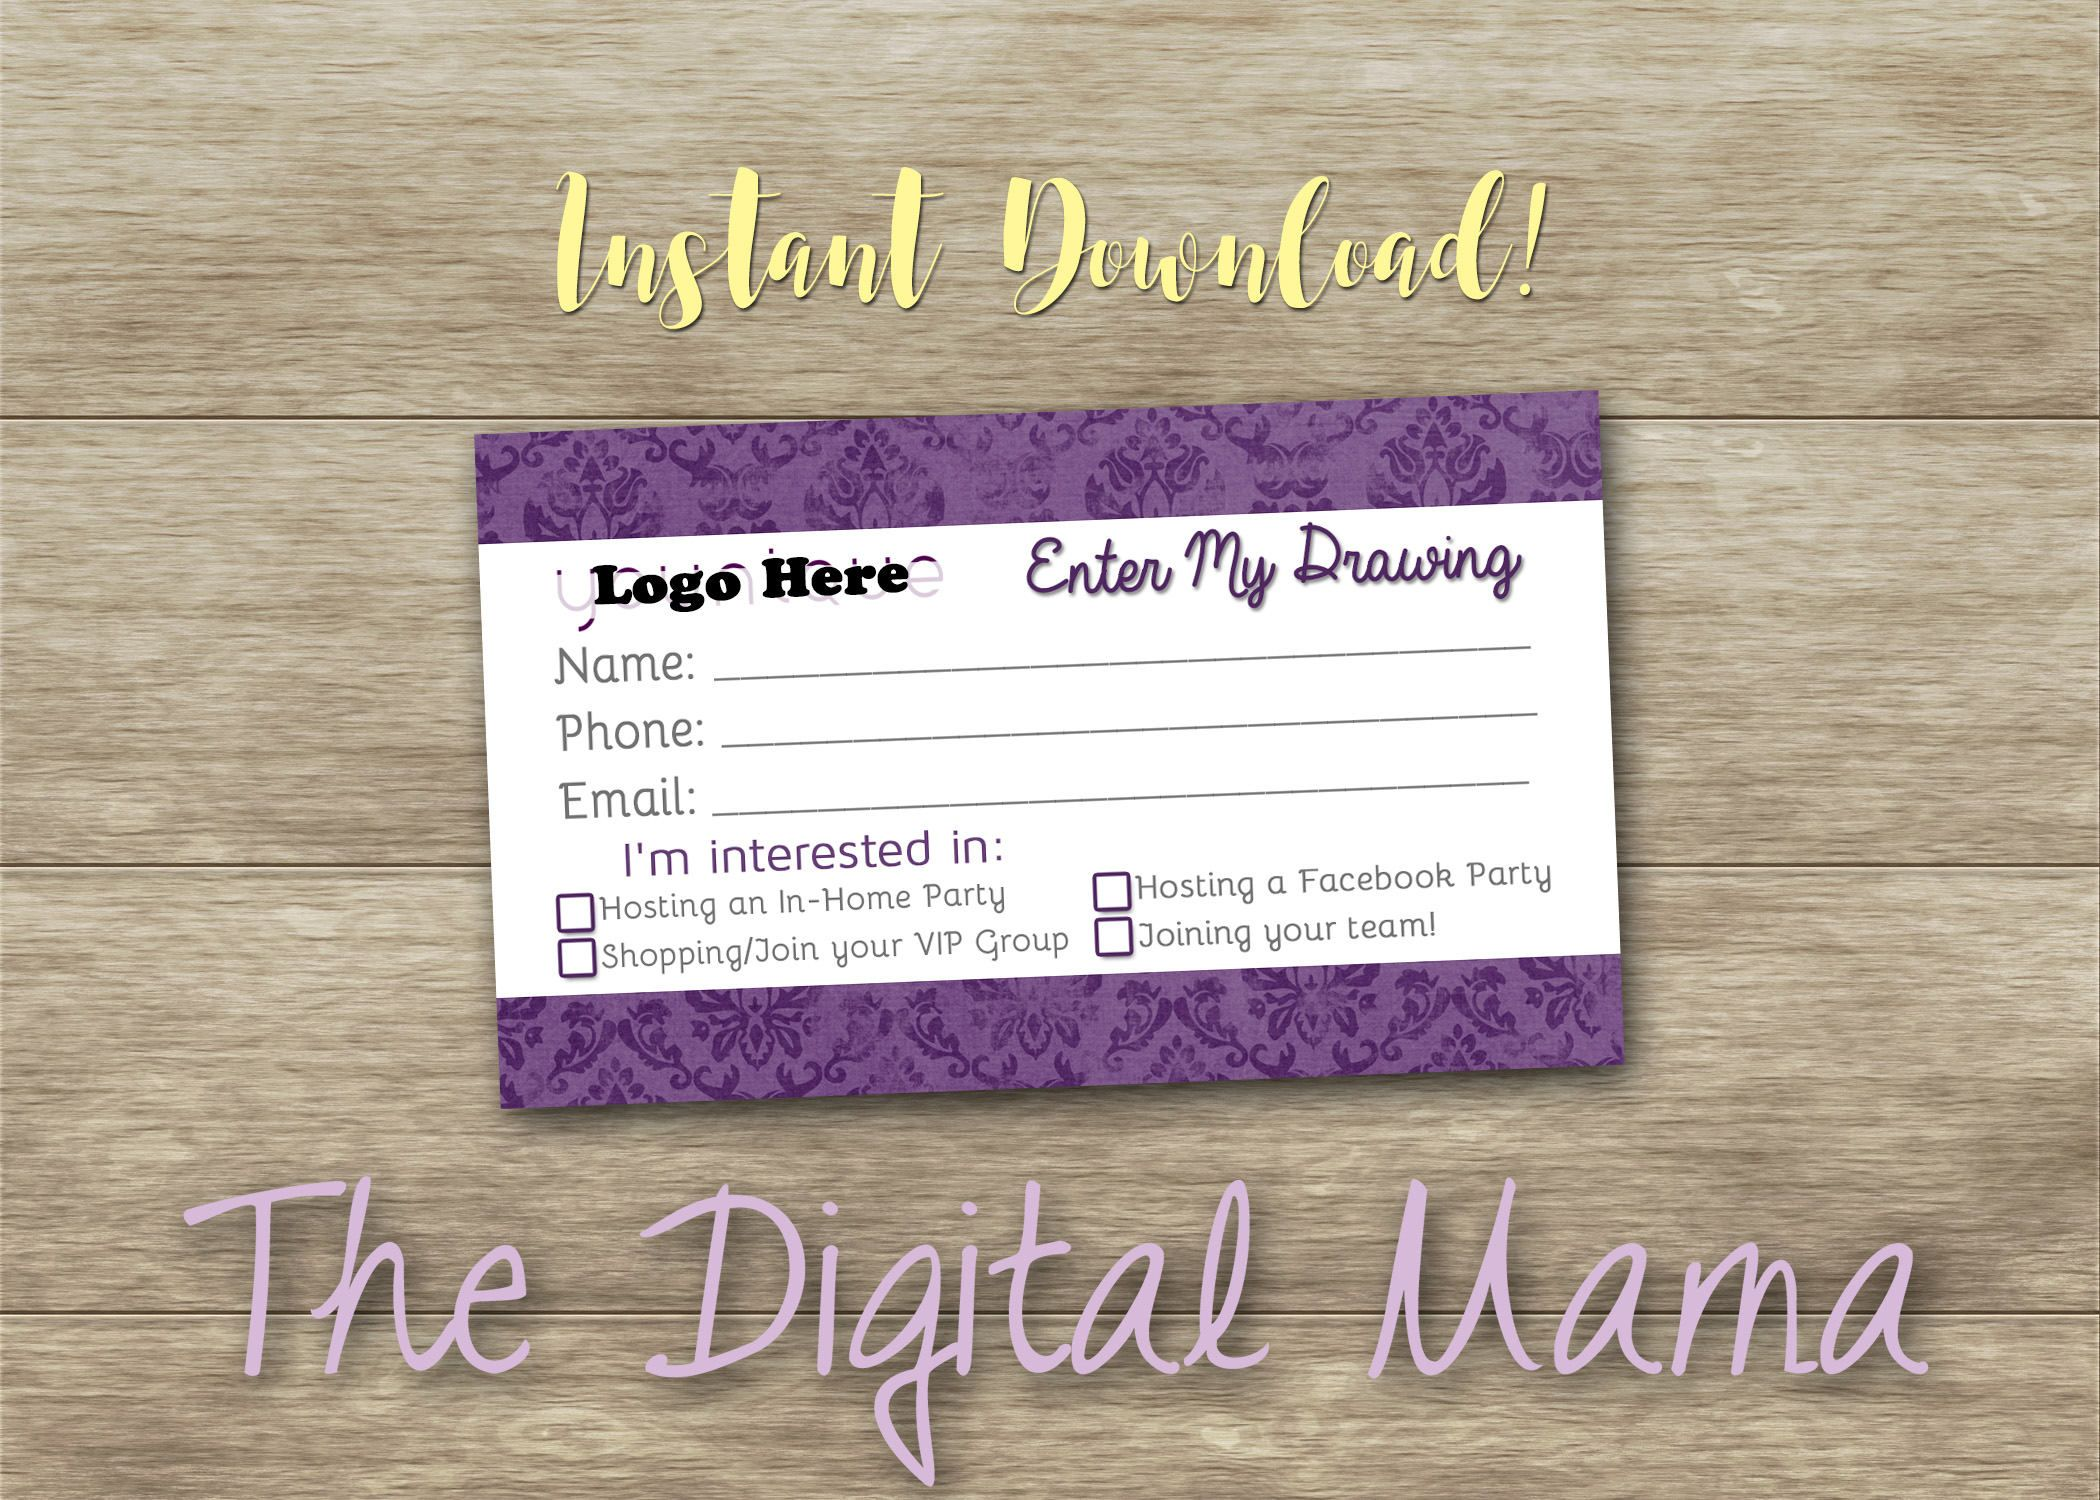 Instant download younique customer information raffle card instant download younique customer information raffle card younique vendor event enter drawing card customer drawing business card magicingreecefo Choice Image